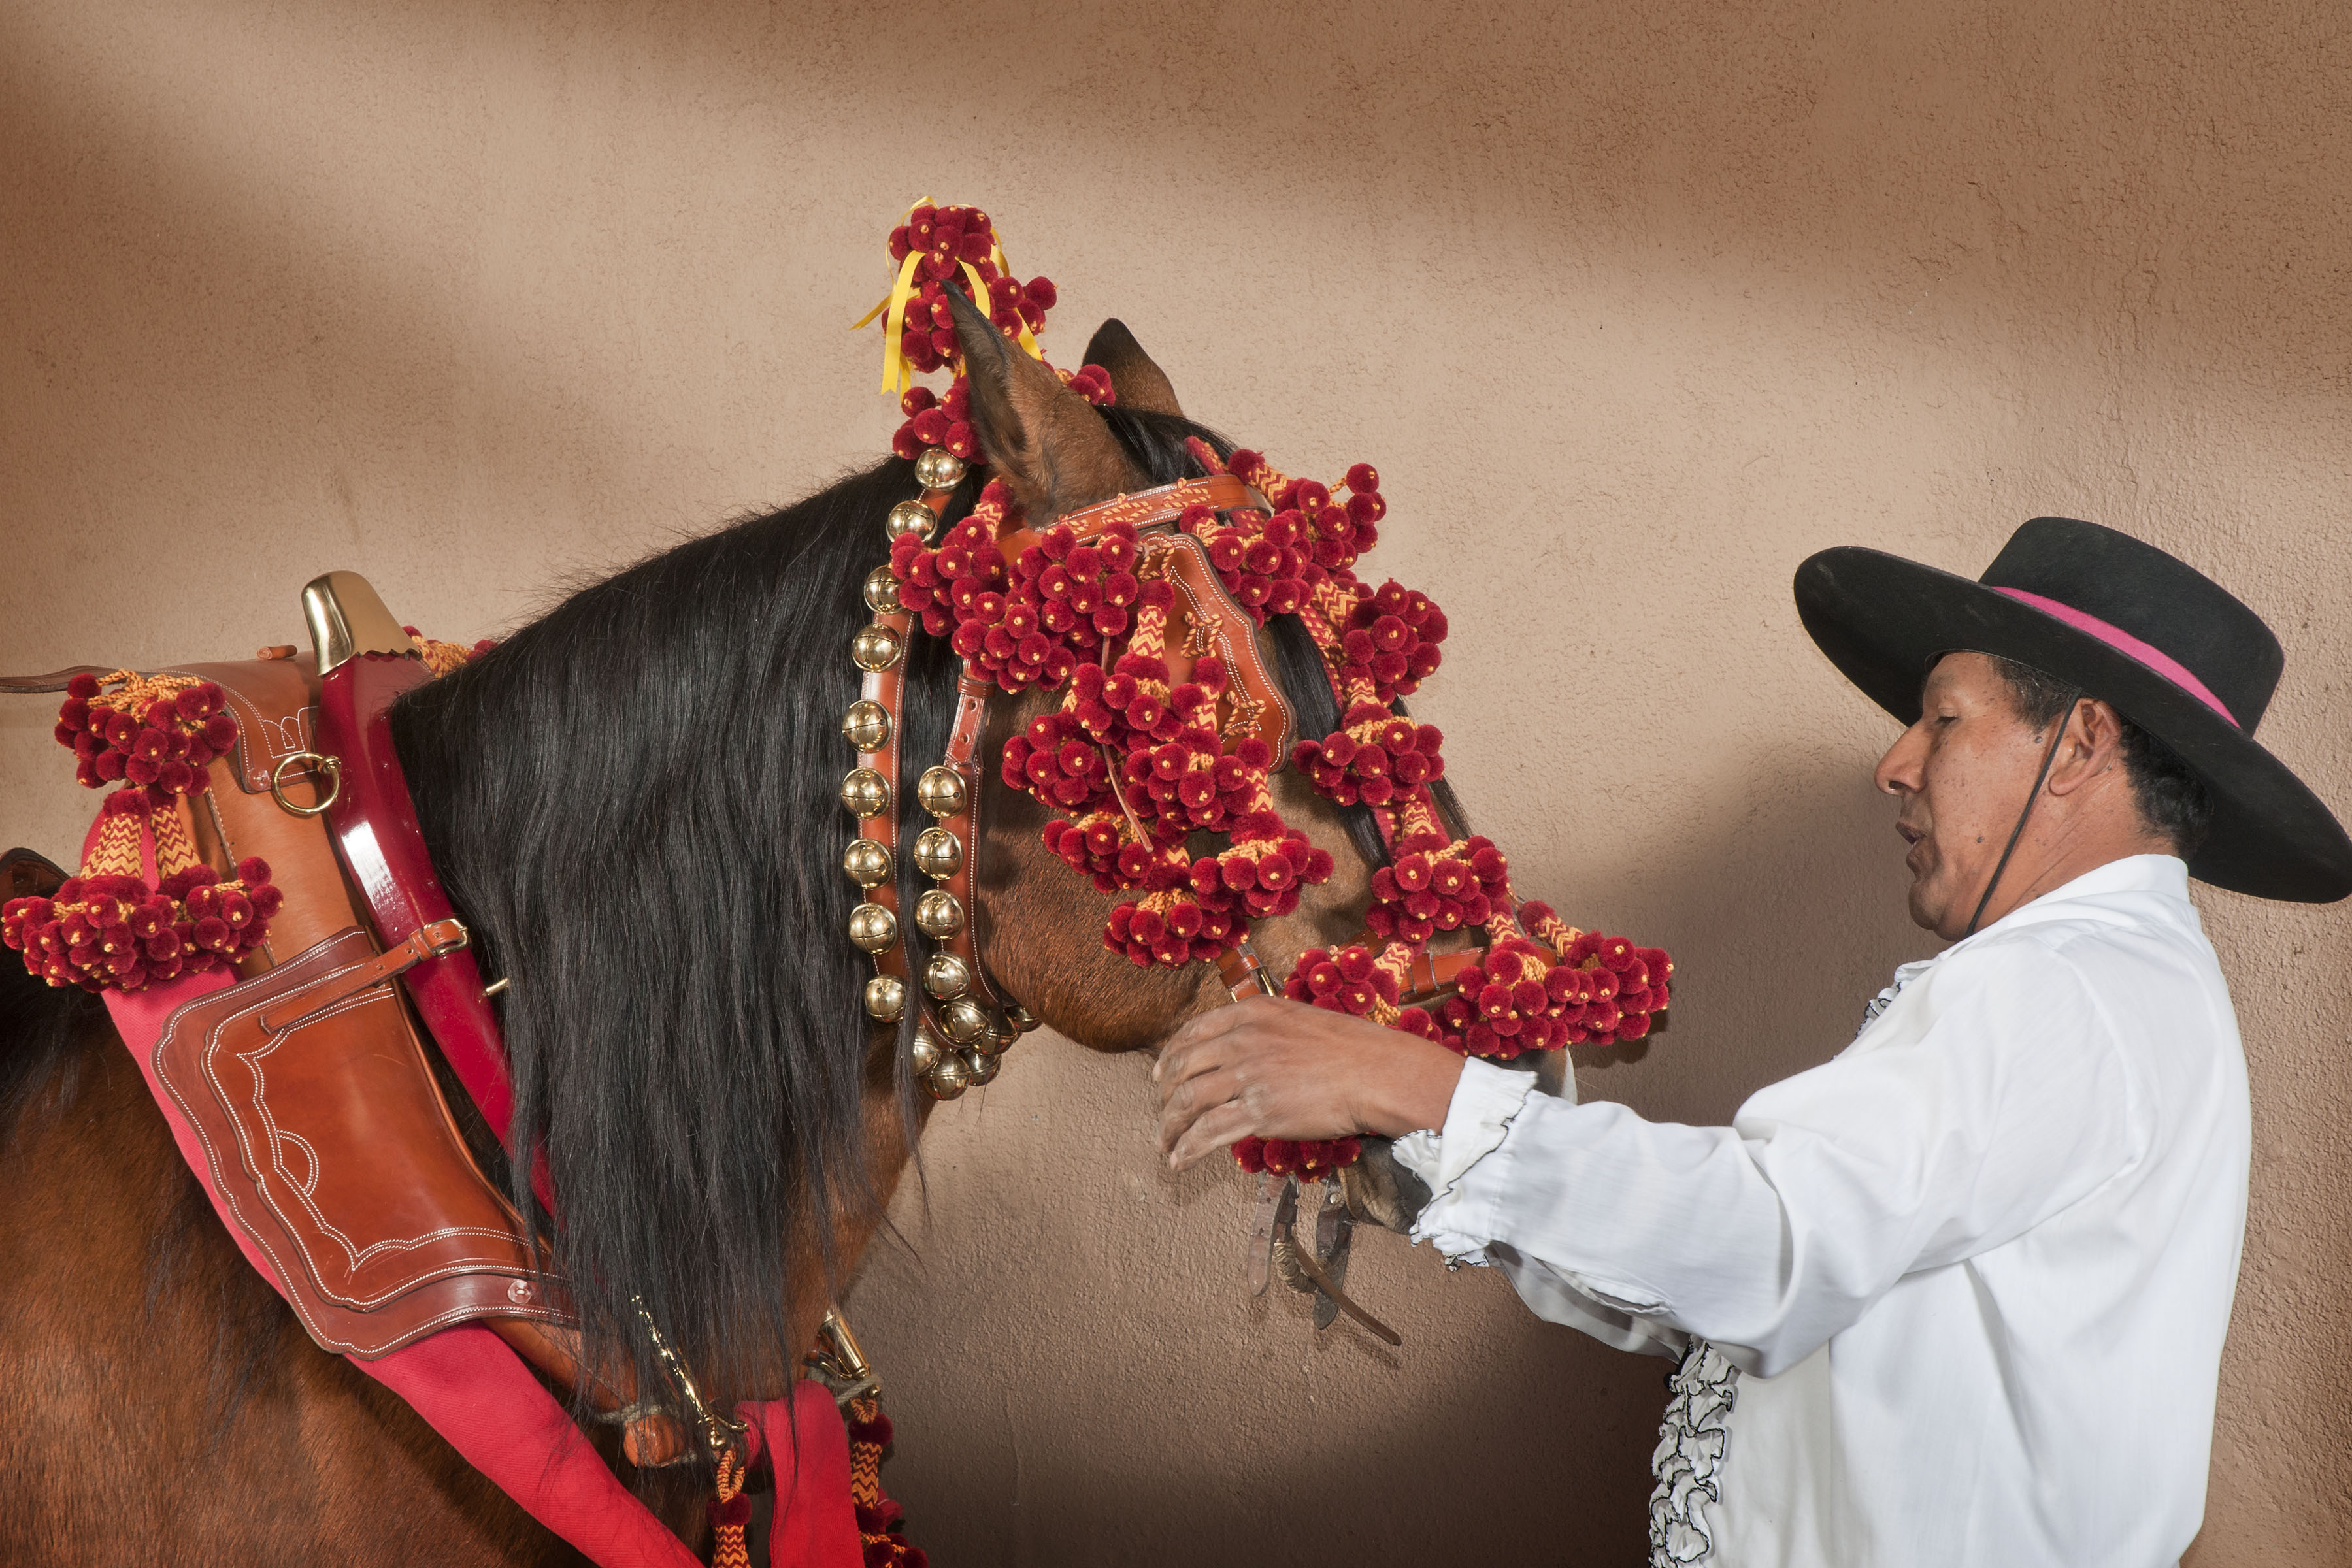 man dressing a horse in red bells and flowers